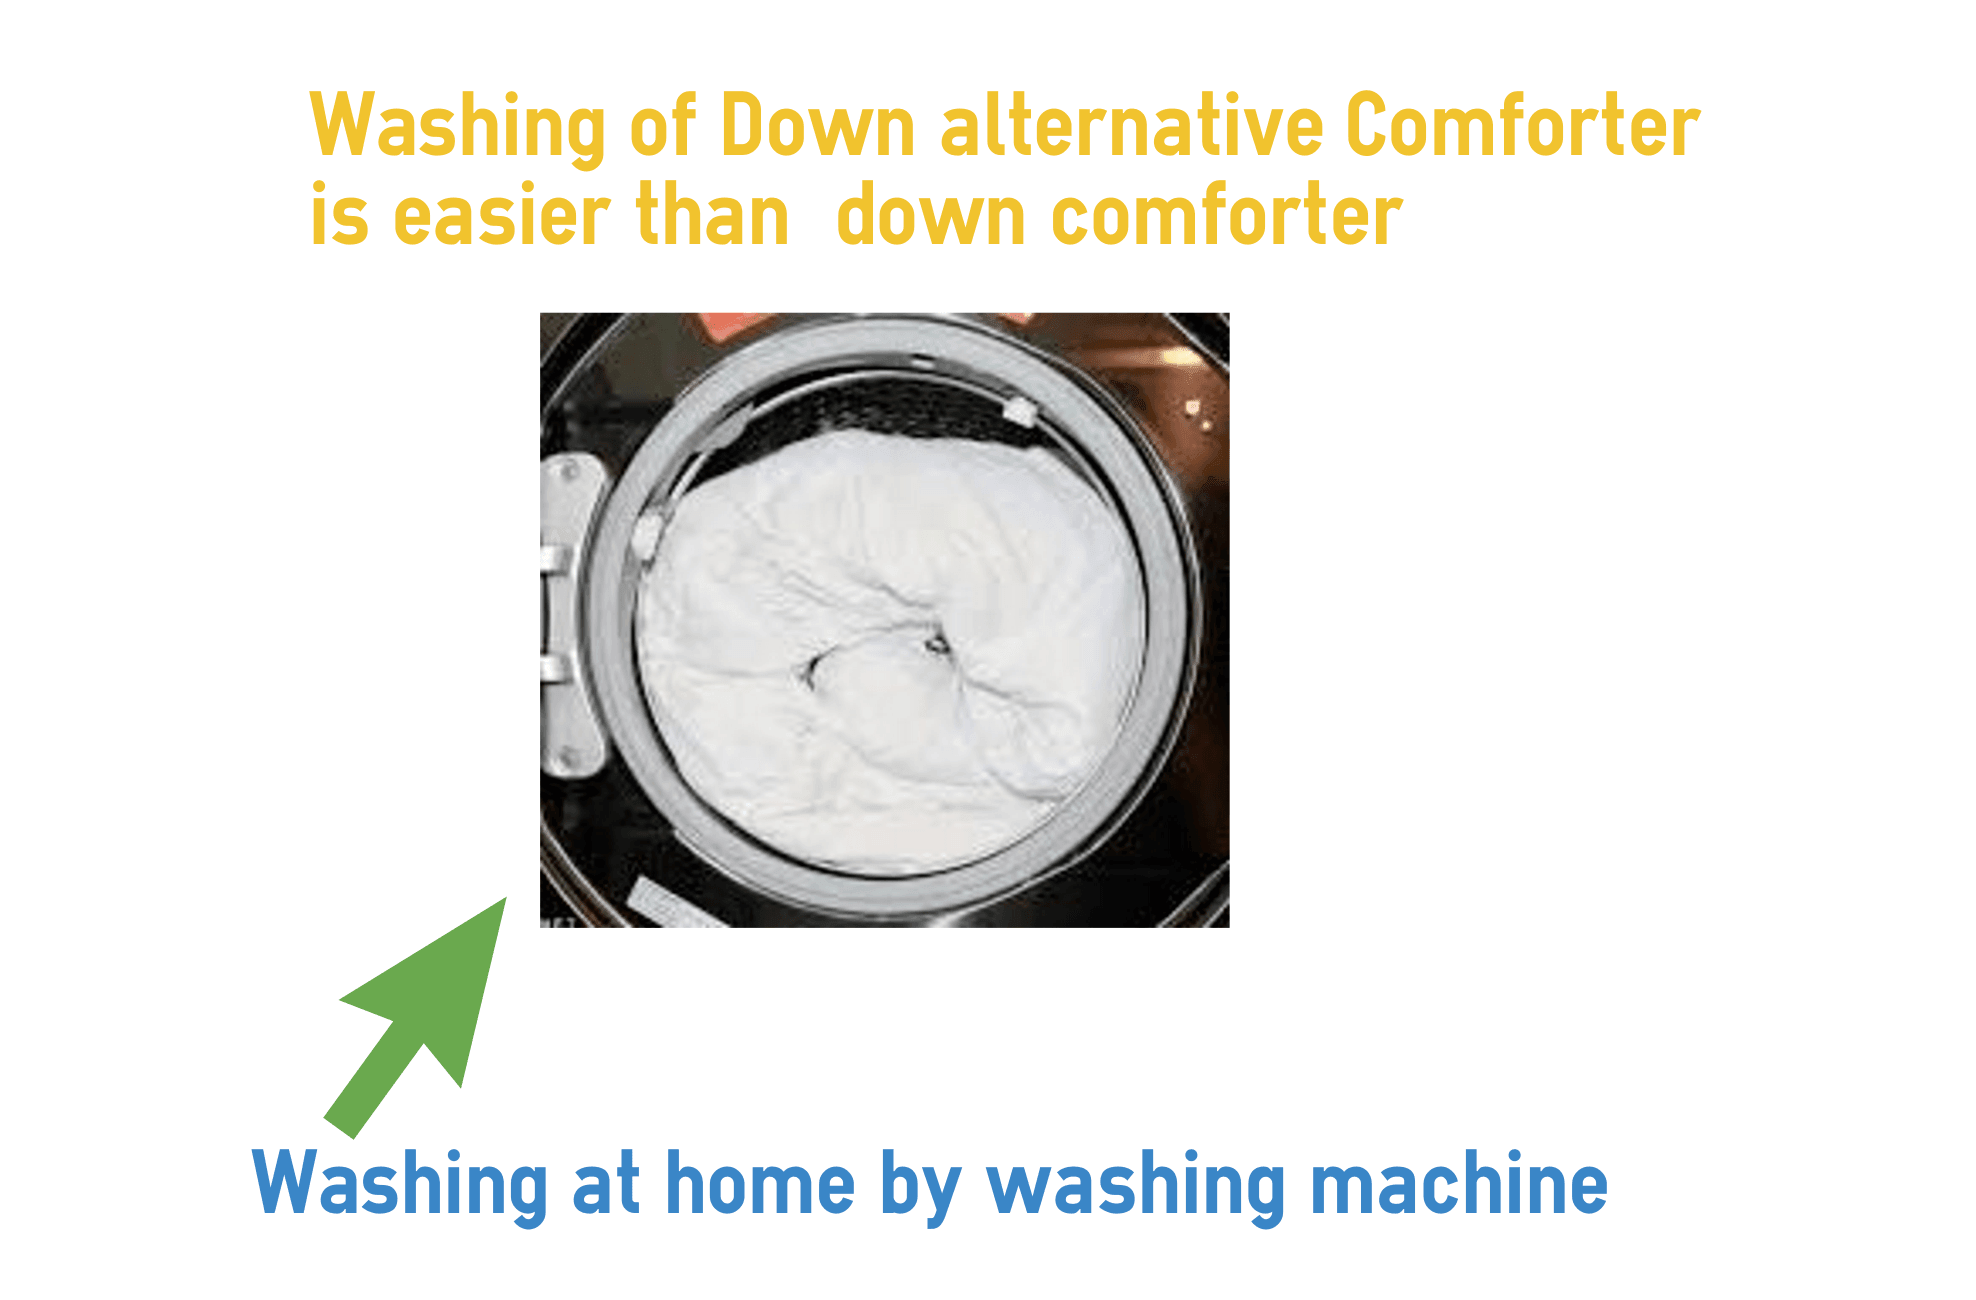 washing of down alternative comforter is easier